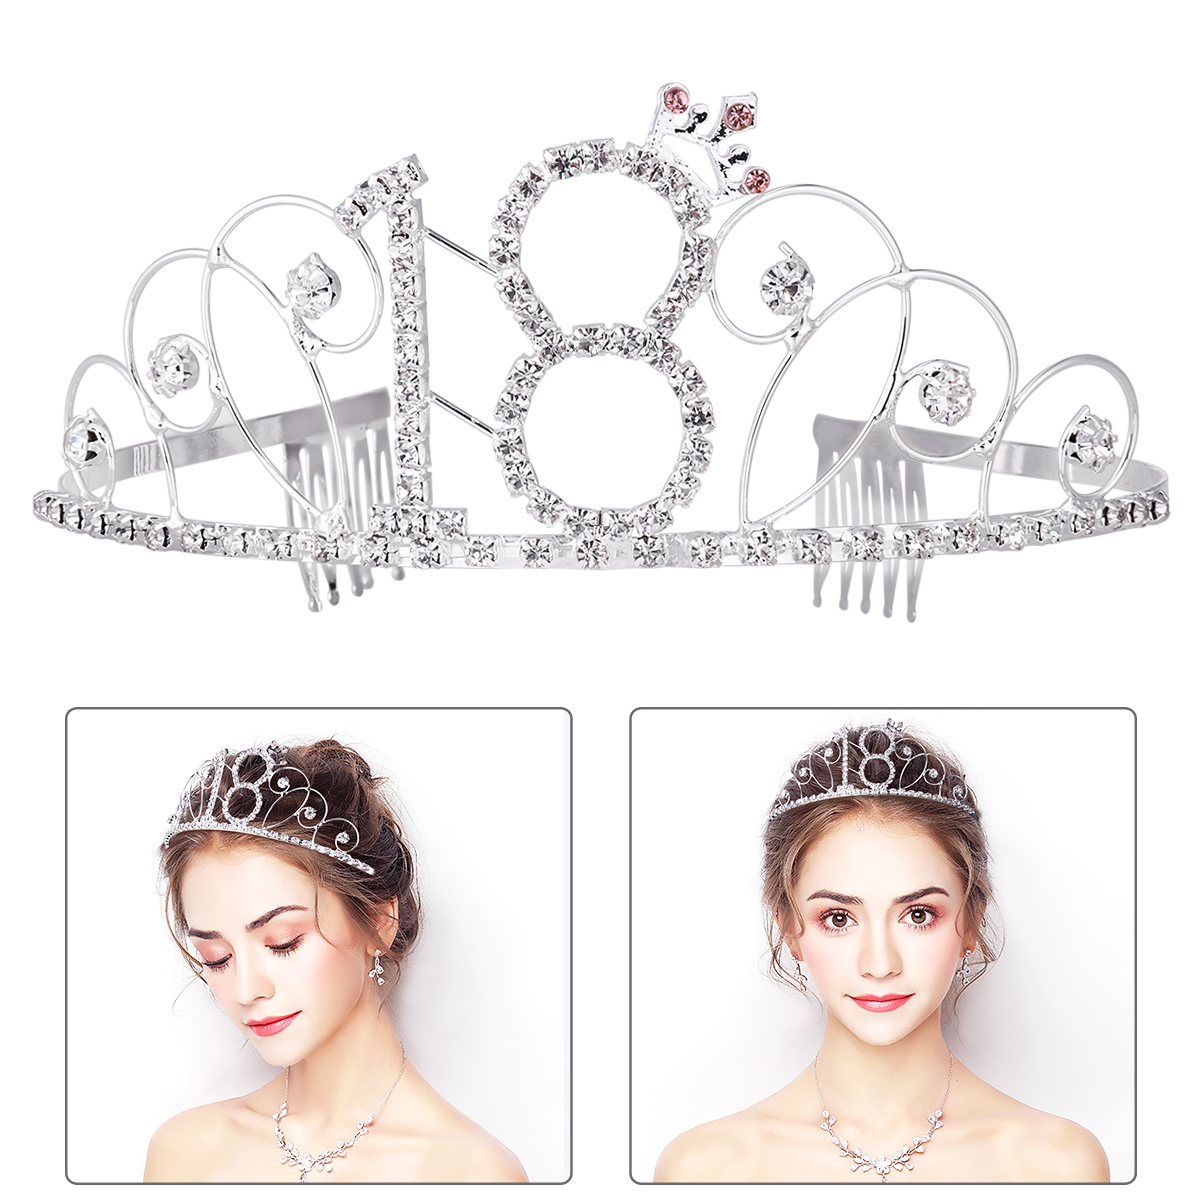 PIXNOR No.18 Crystal Birthday Tiara Princess Crown Hair